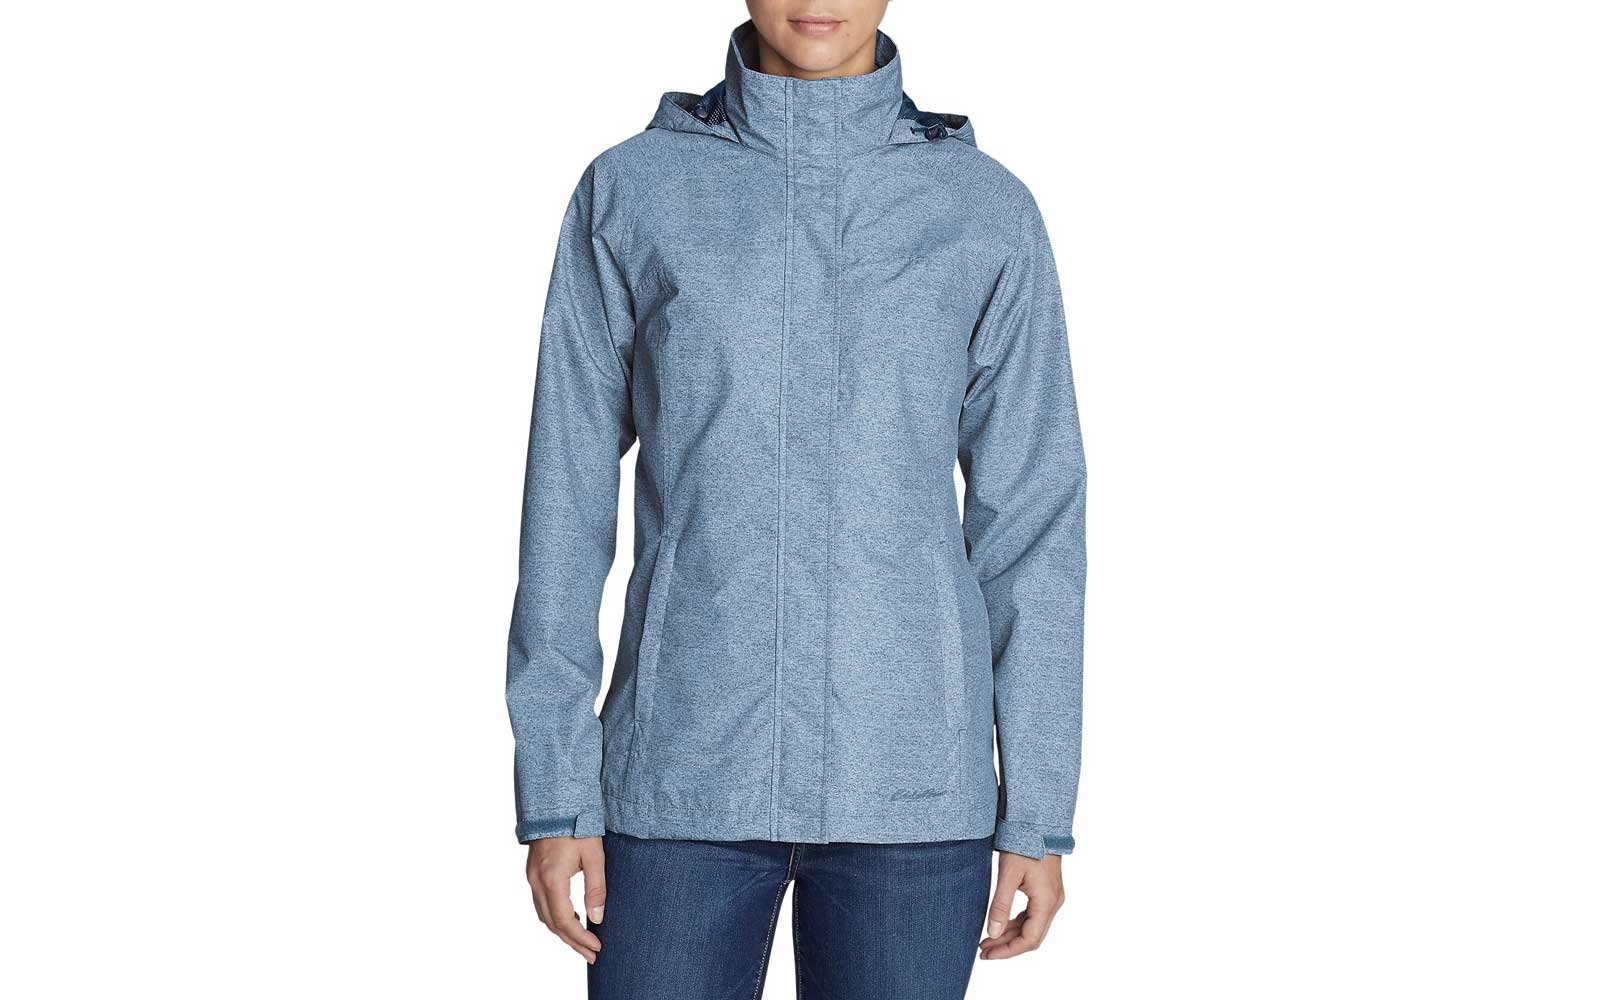 3b78b9207e3b0 Eddie Bauer Women s  Rainfoil  Packable Jacket